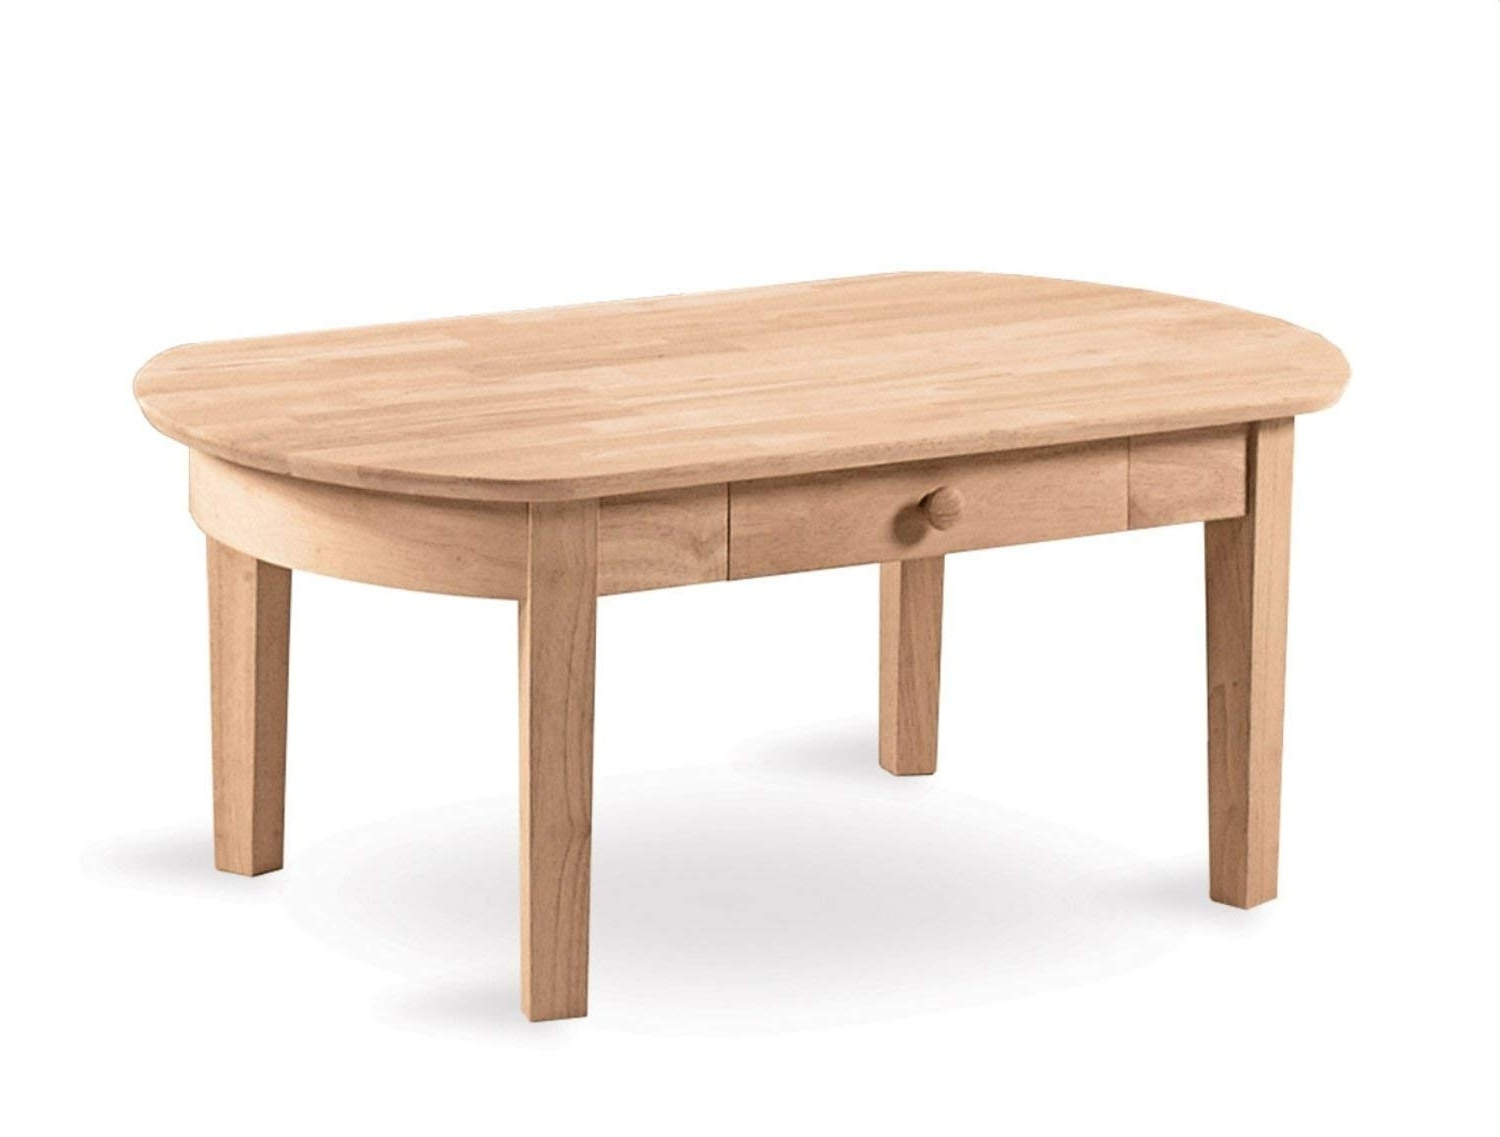 Carly Triangle Tables In Recent Amazon: International Concepts Ot 5C Phillips Oval Coffee Table (View 7 of 25)